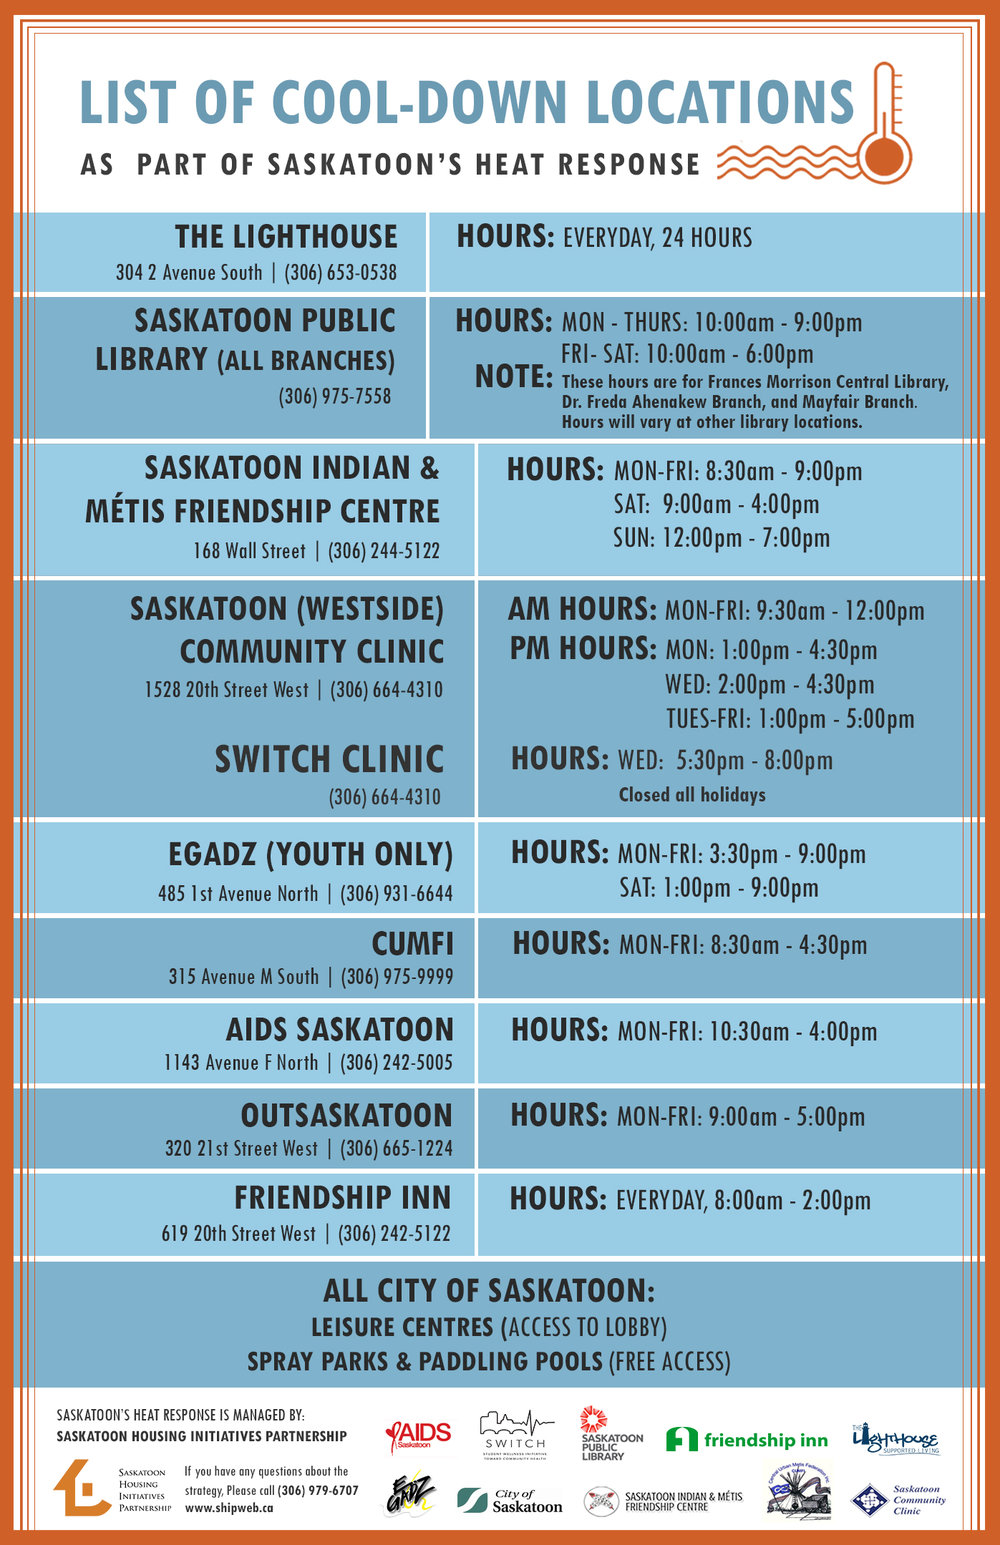 COOL-DOWN LOCATIONS - Homeless individuals and families can cool down during hot temperatures as part of Saskatoon's Heat Response